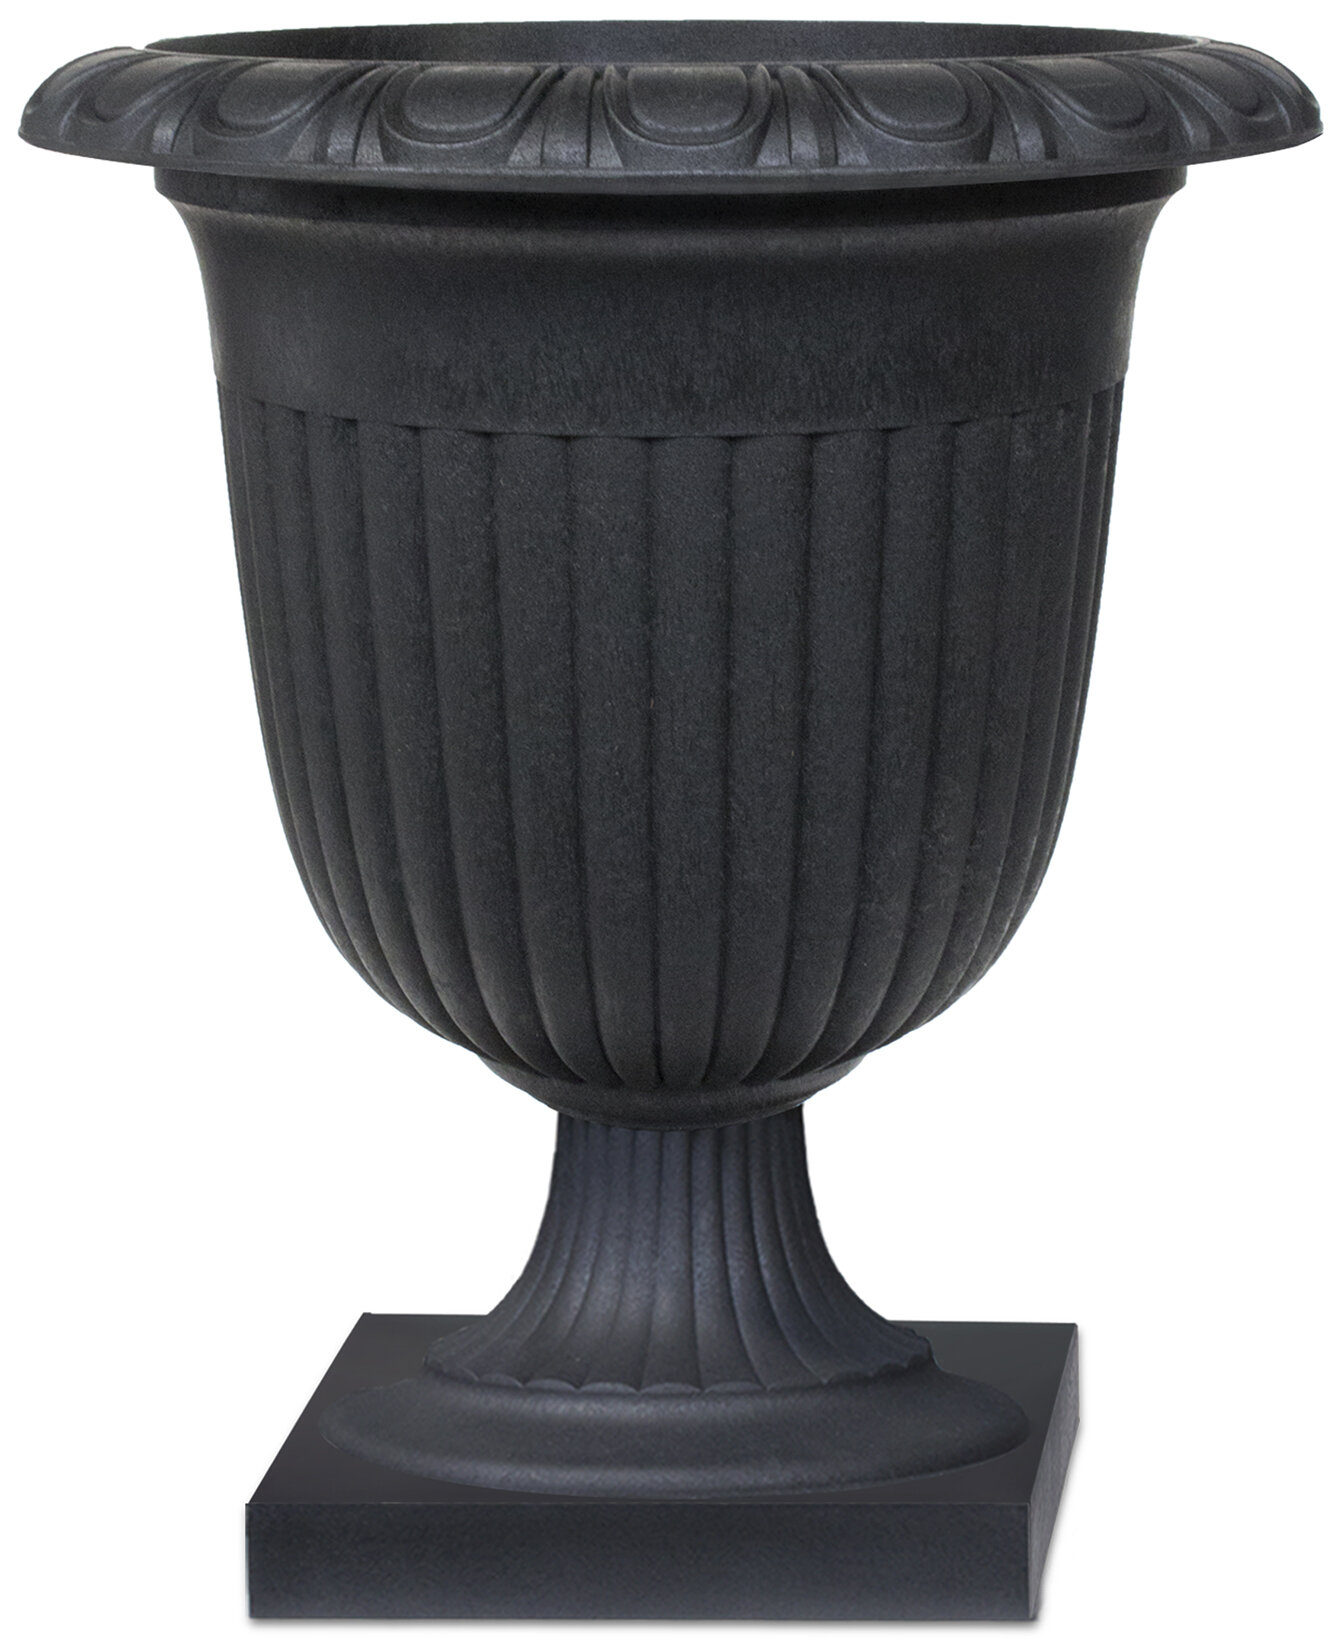 in qr qcp detail planters urn quail hill round urns red planter